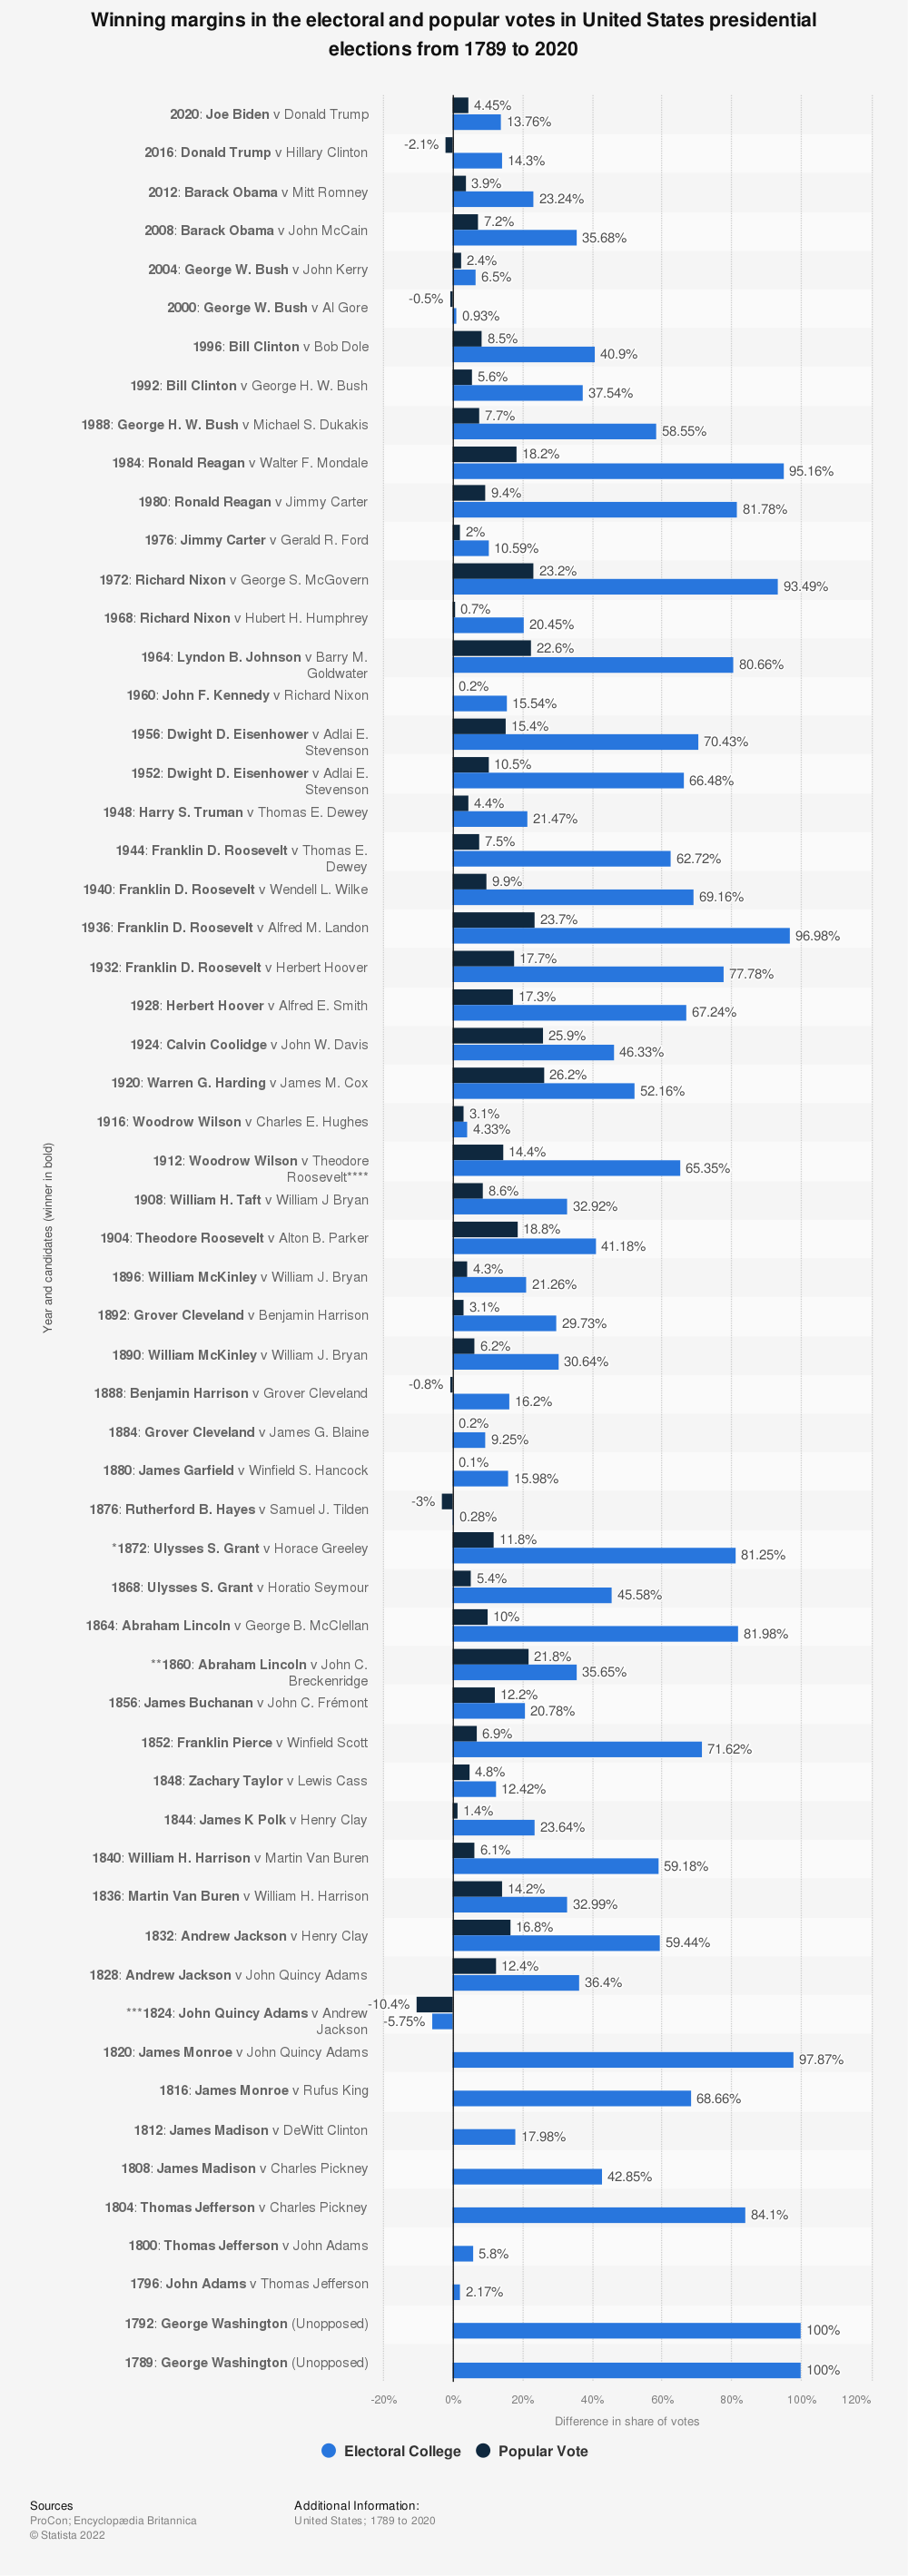 Statistic: Winning margins in the electoral and popular votes in United States presidential elections from 1789 to 2020 | Statista